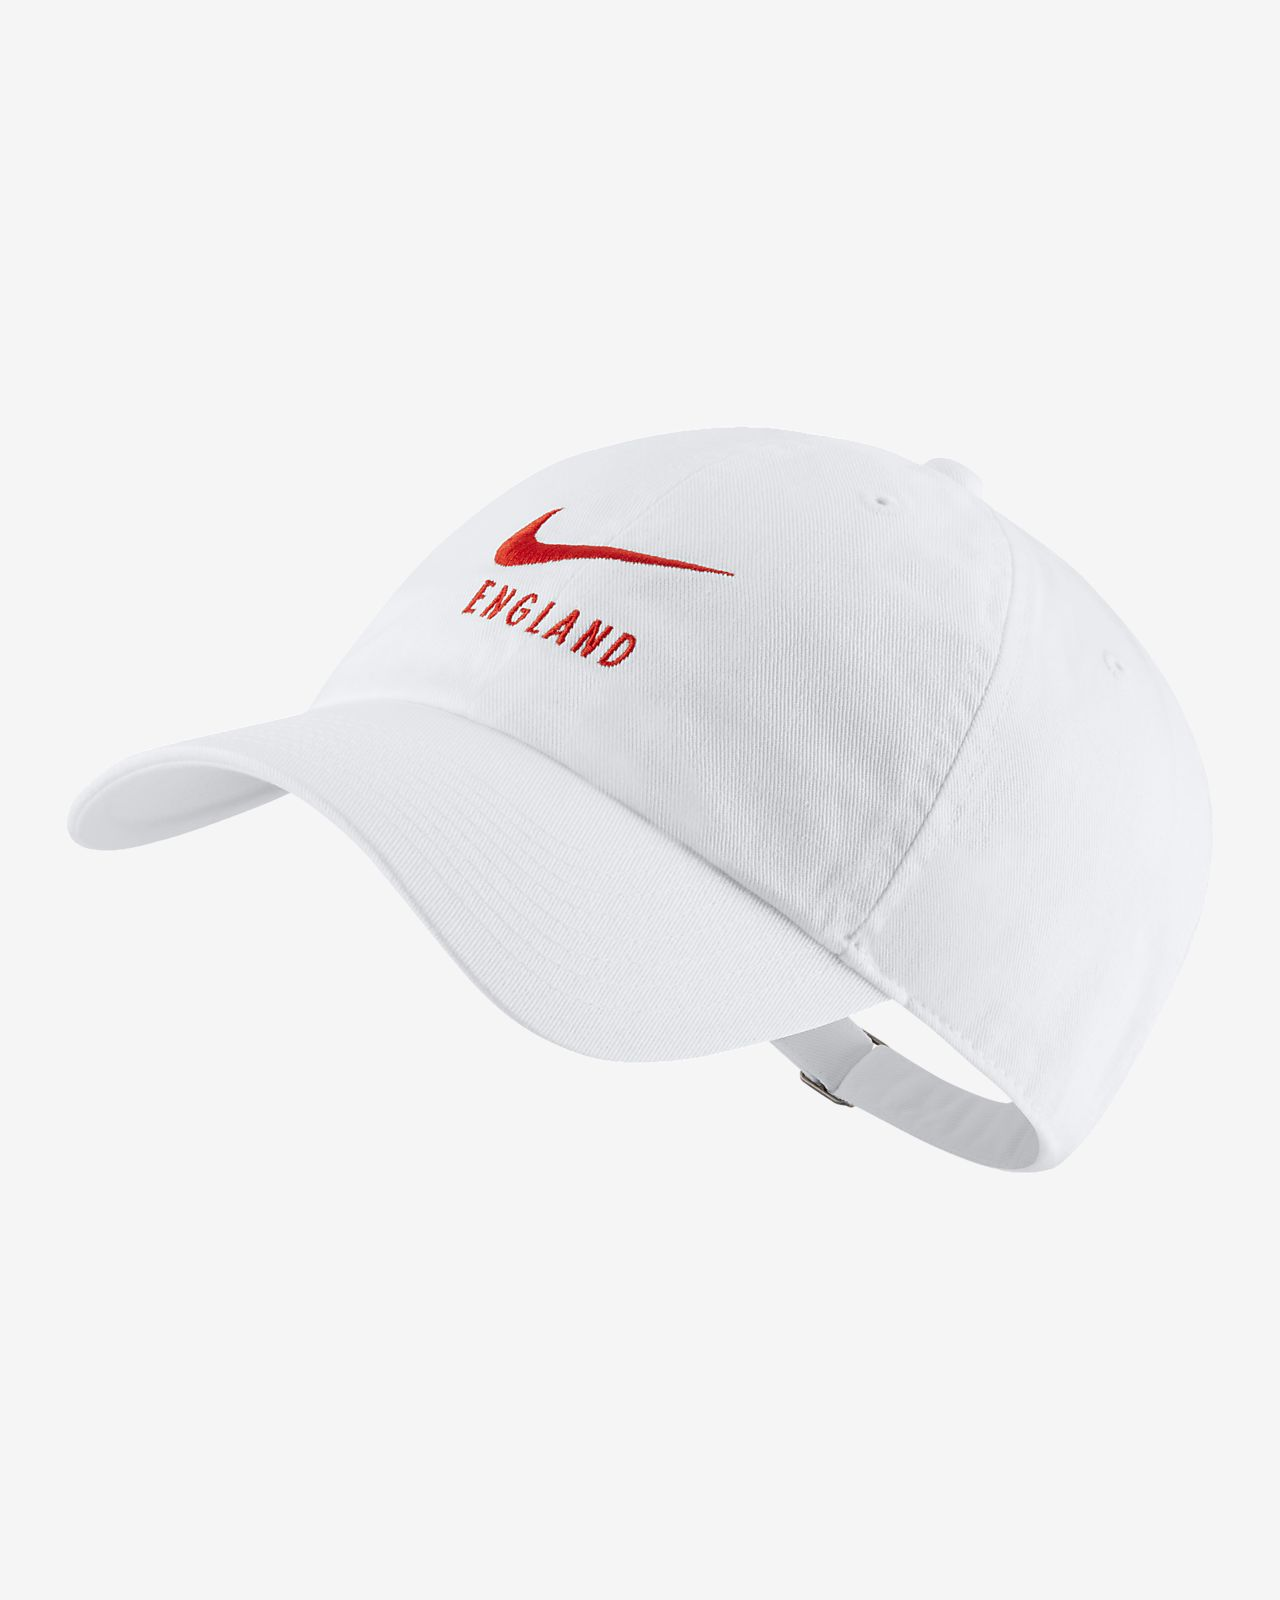 England Heritage86 Adjustable Football Hat